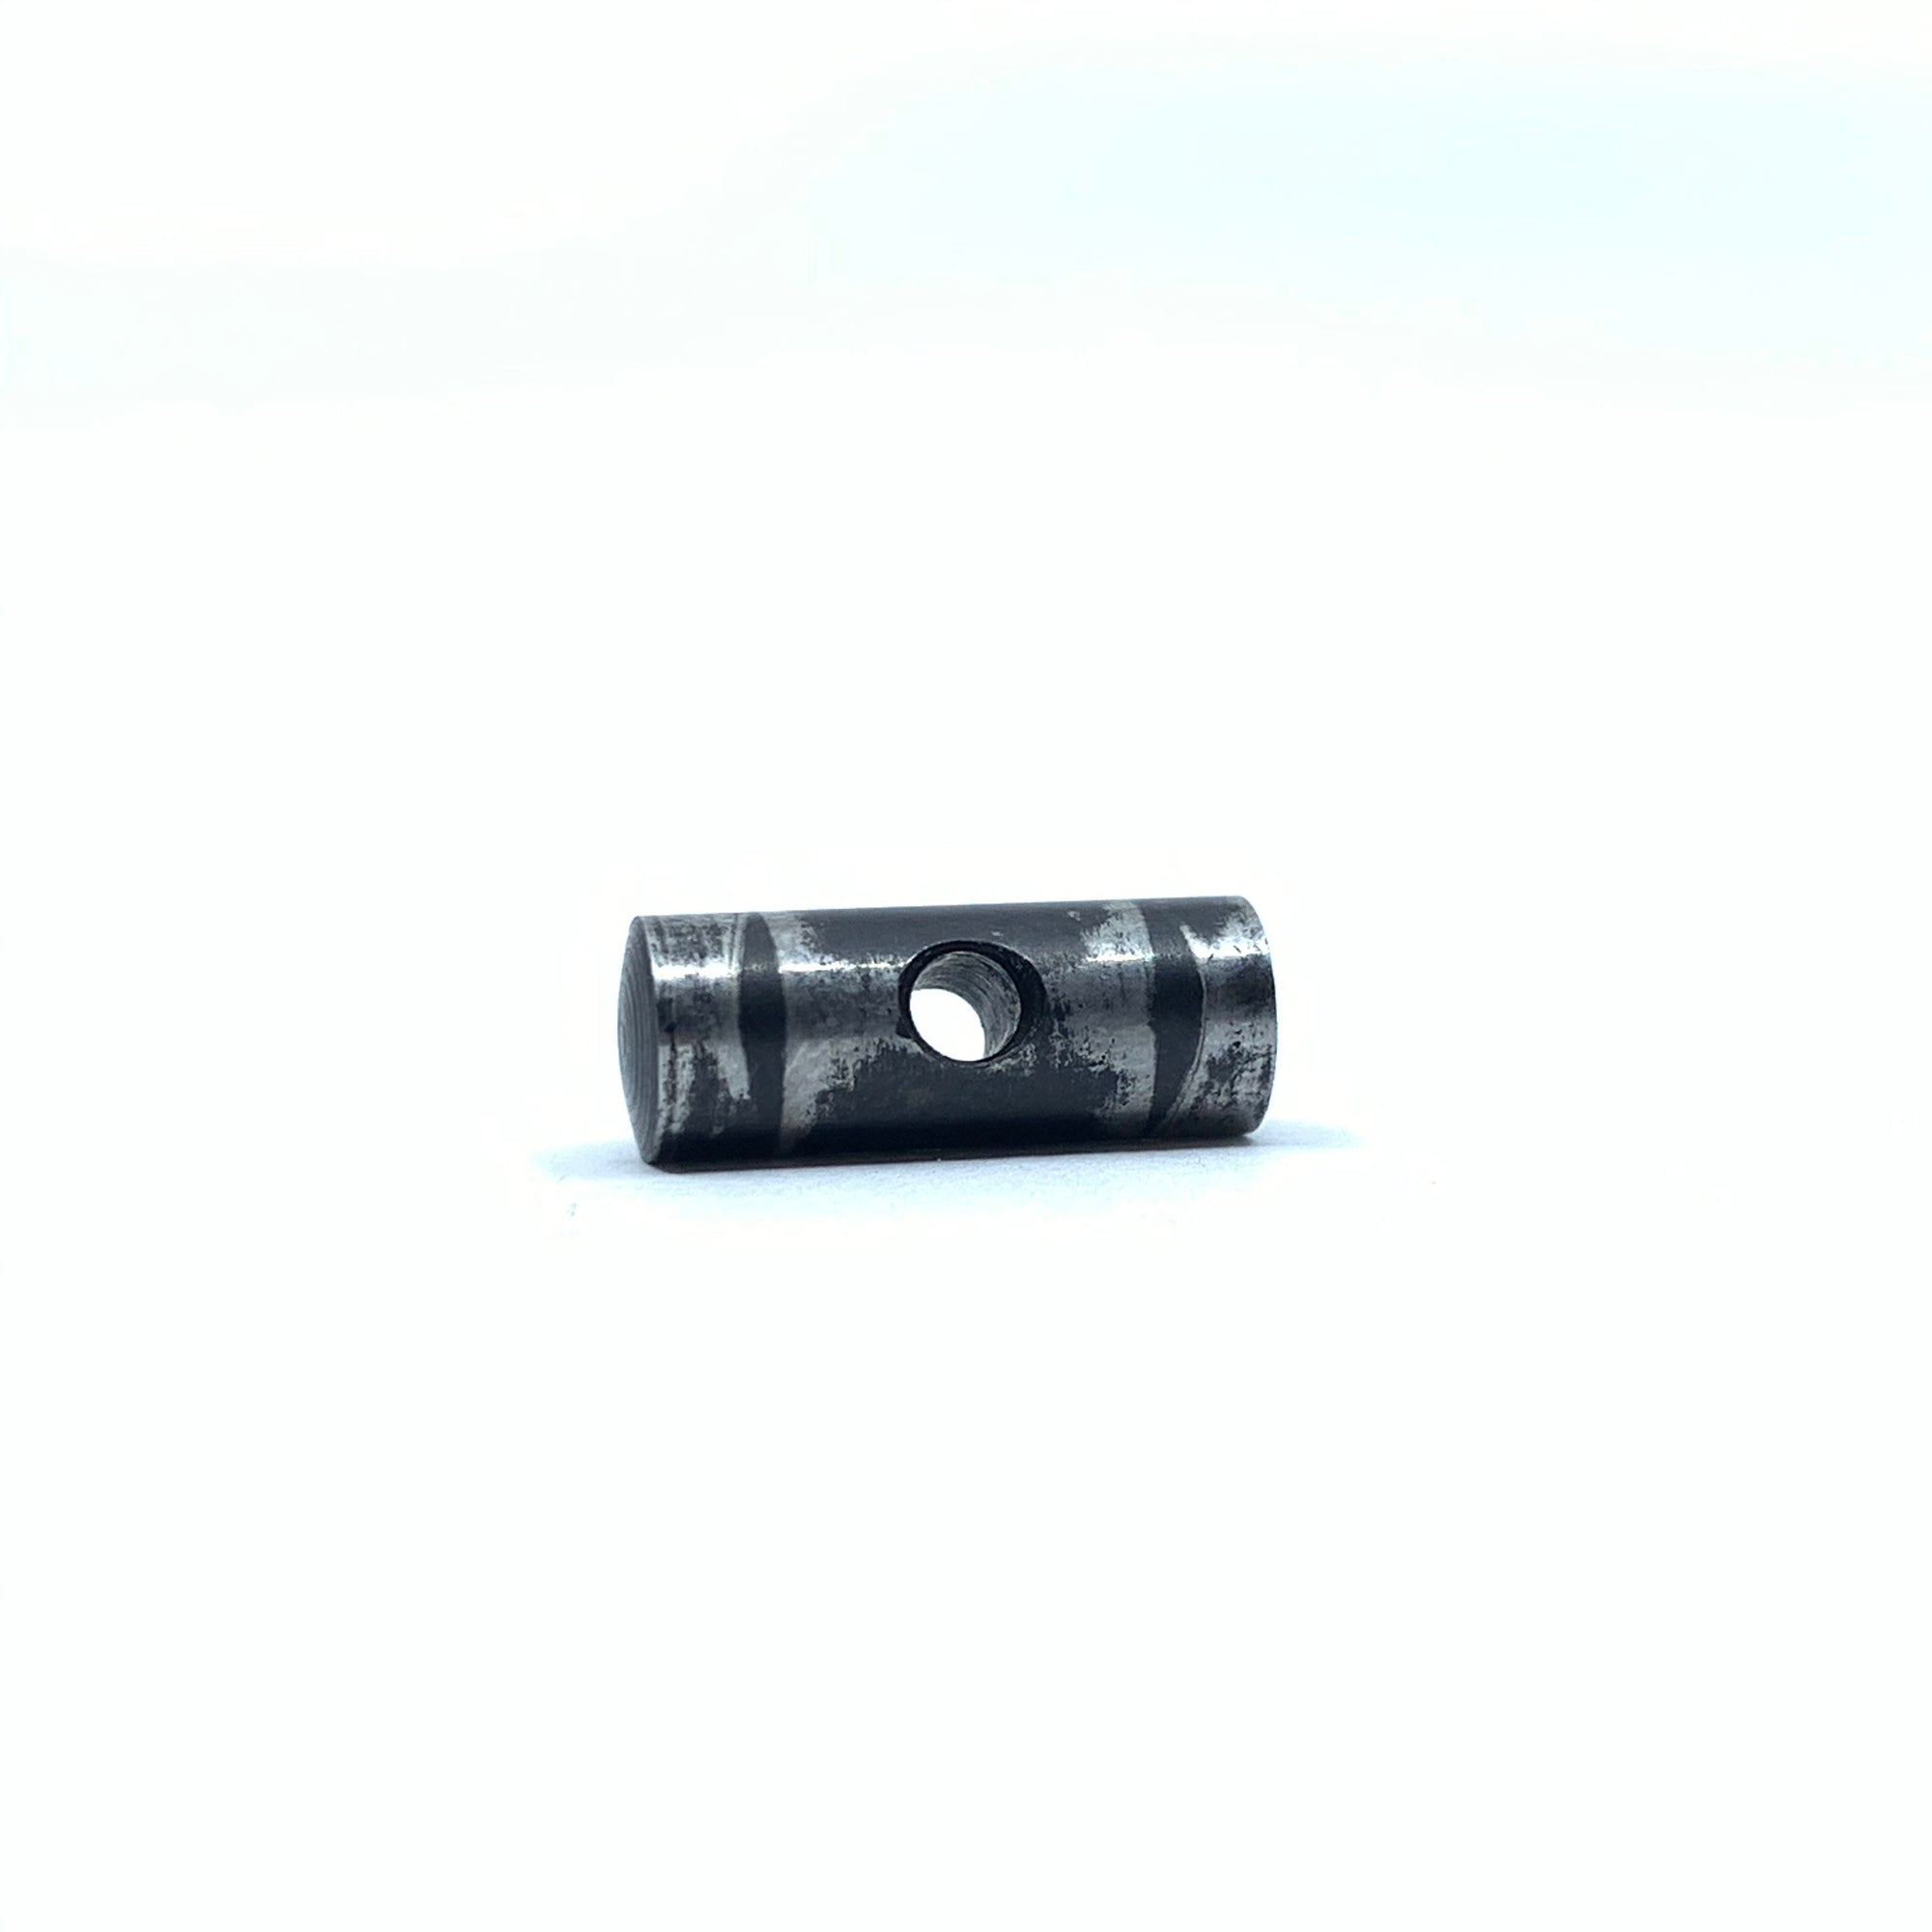 Savage Axis Rifle 223 Cross Bolt Retaining Pin